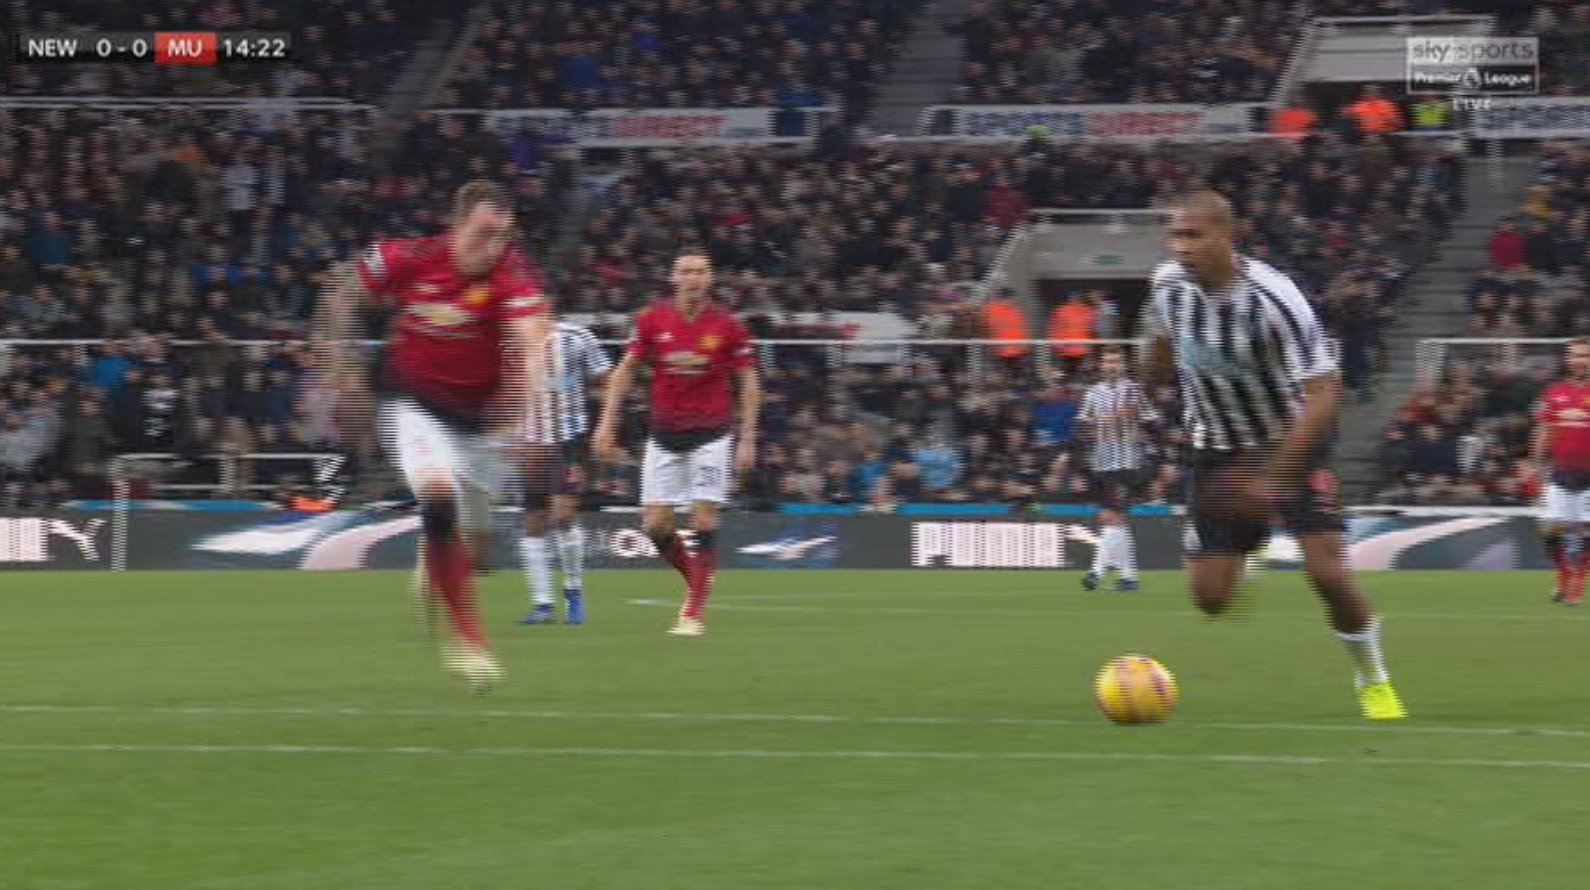 Rondon is through on goal and looking to score